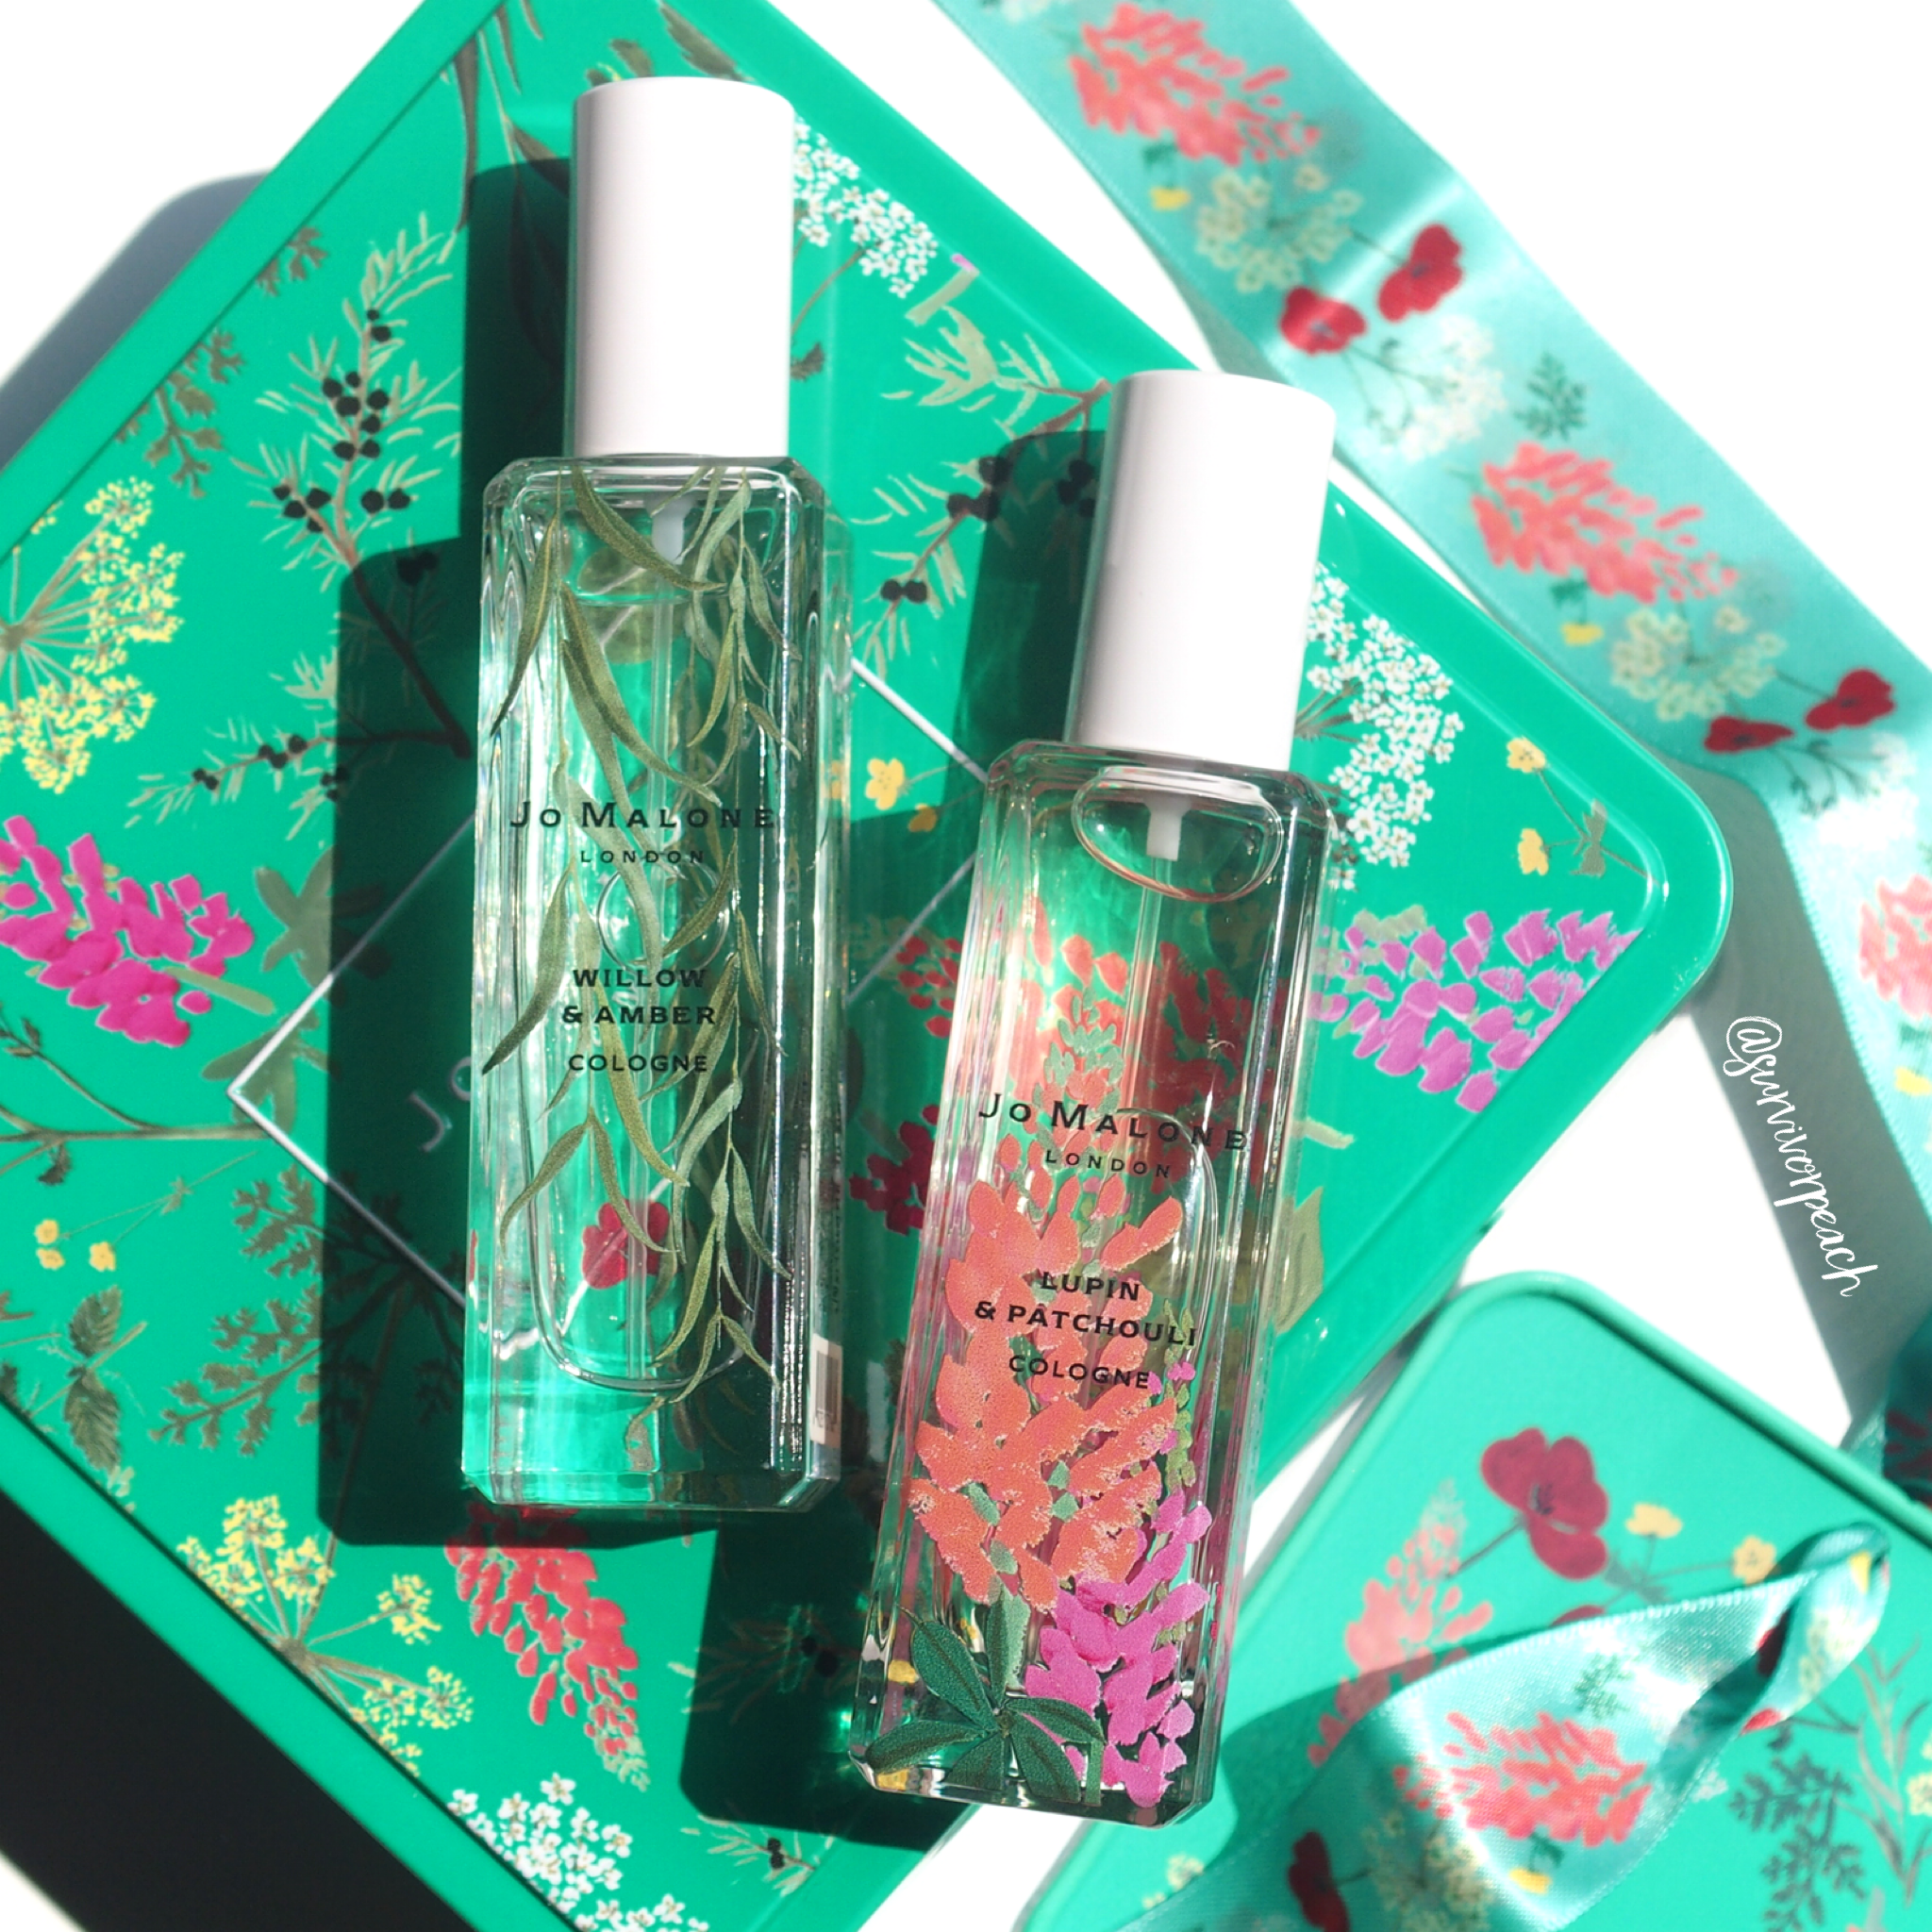 Jo Malone Wild Flowers & Weeds collection: Amber & Patchouli and Willow & Amber